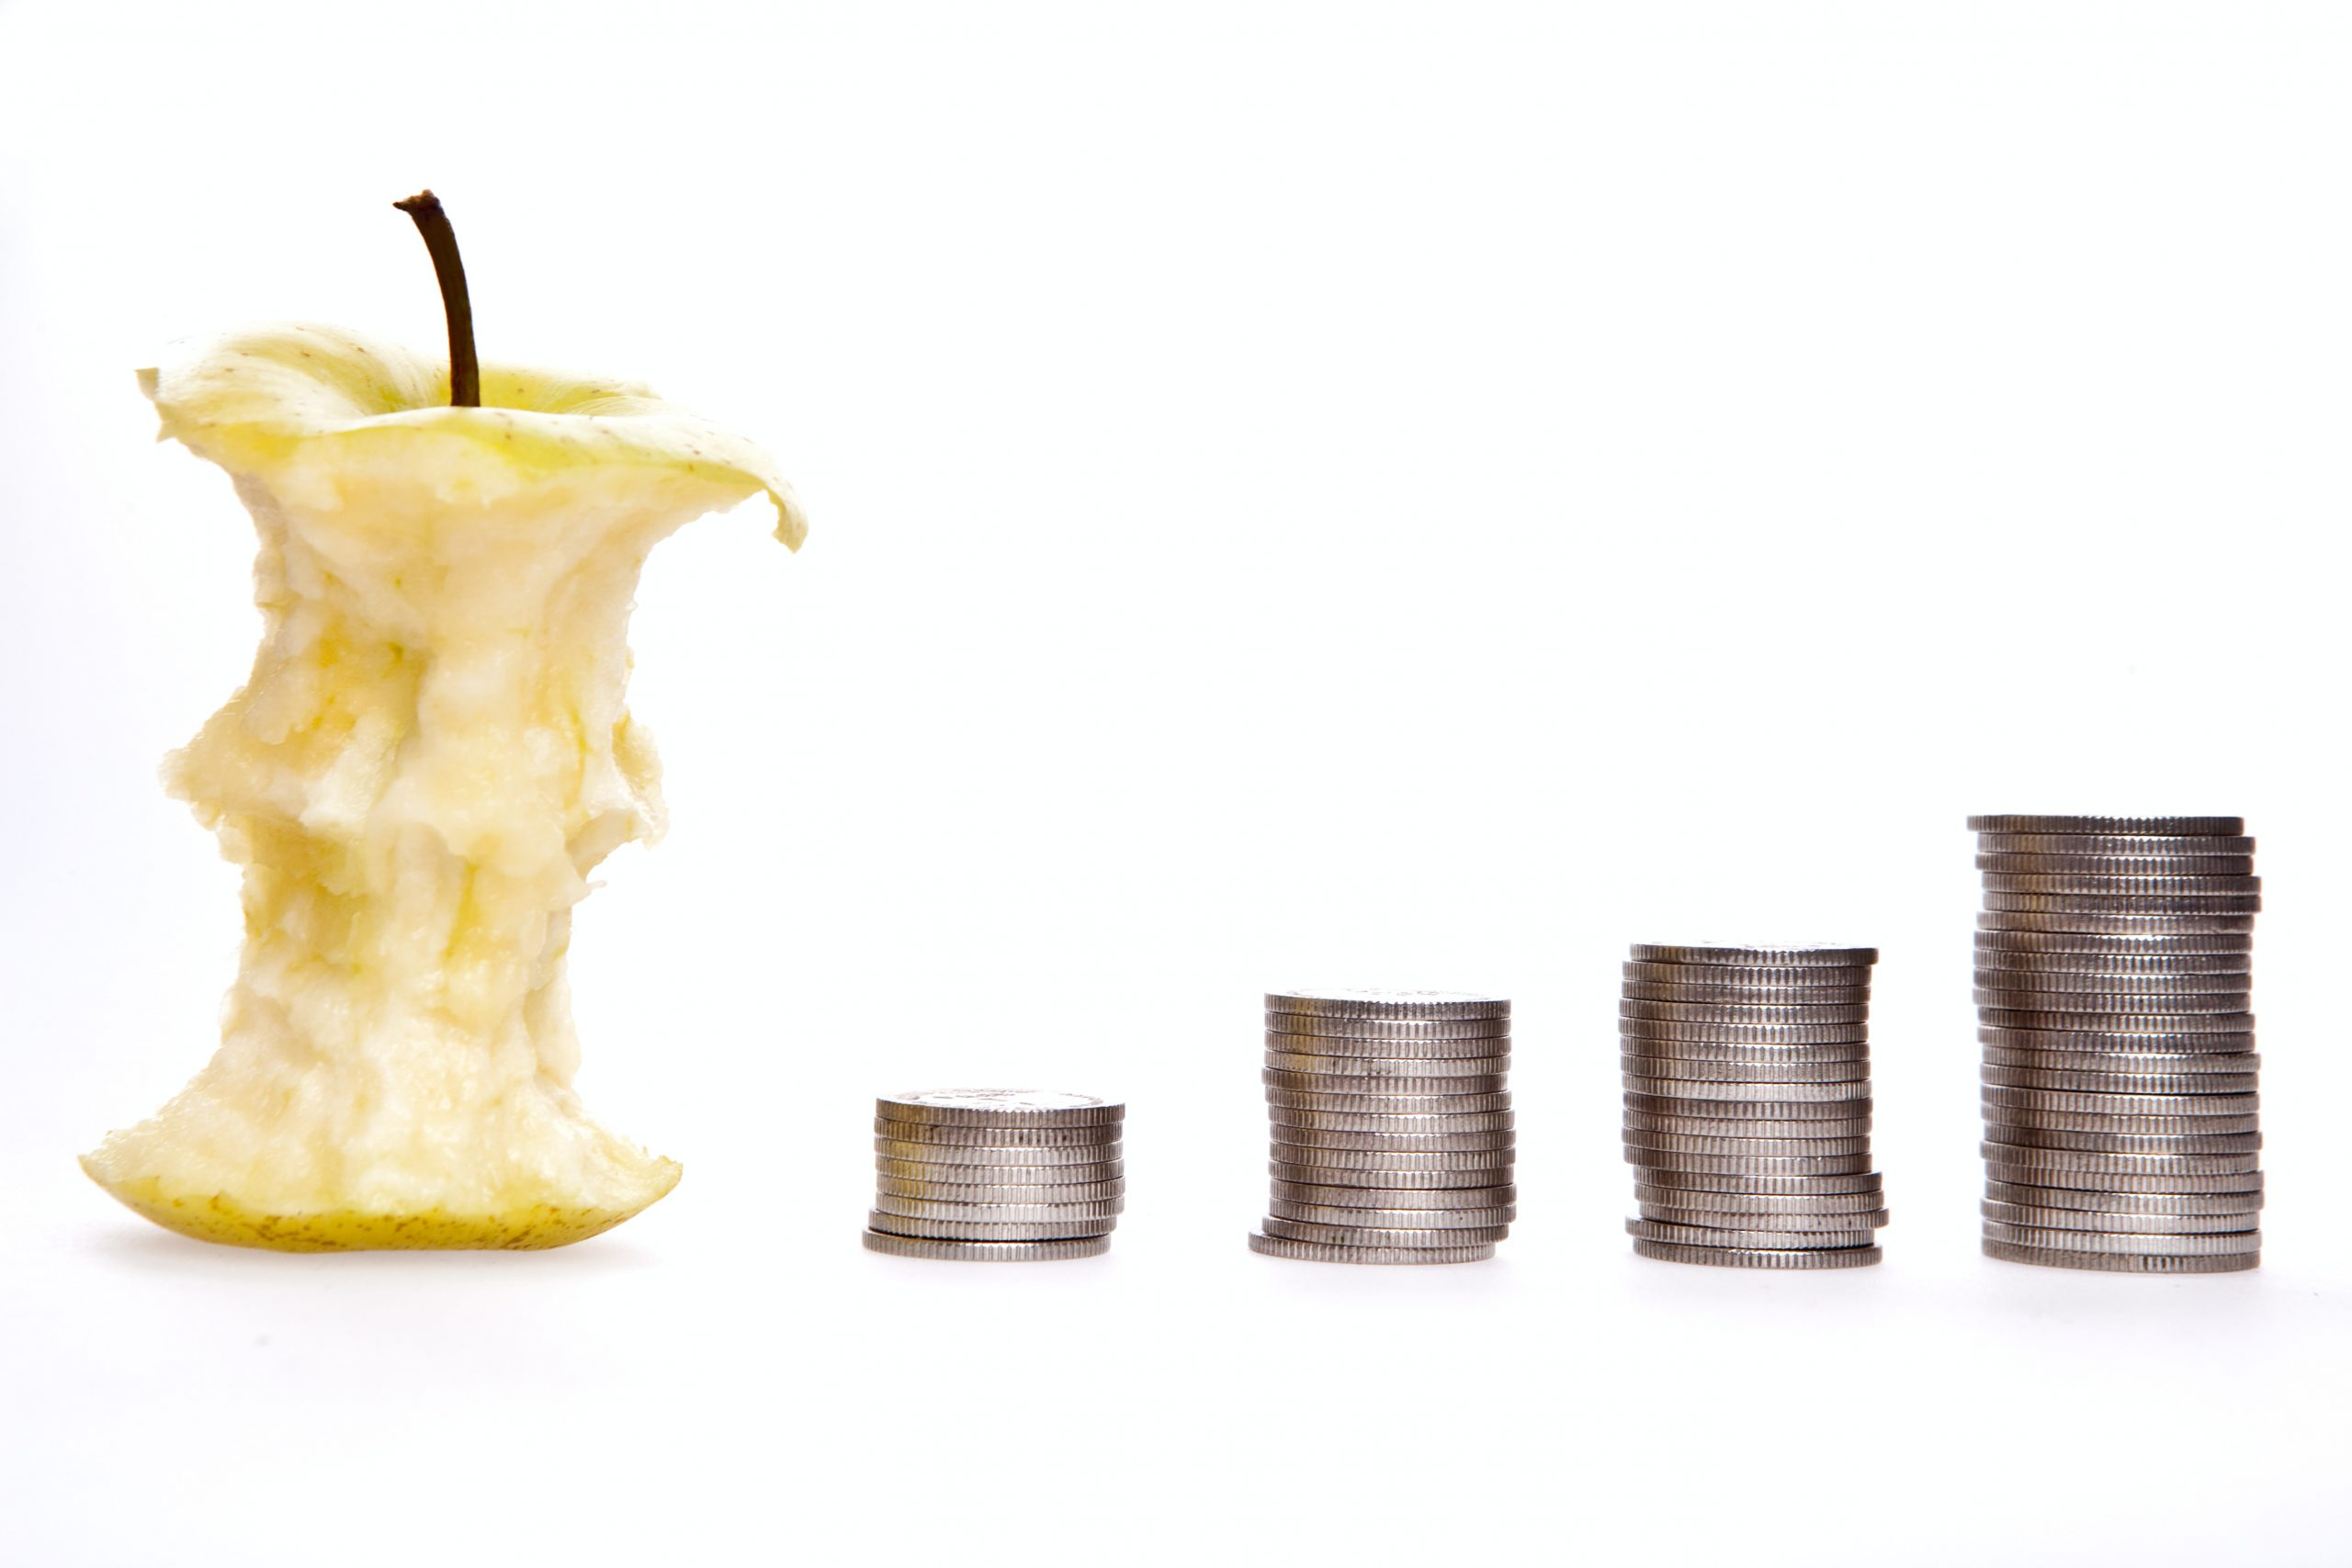 Money and an apple